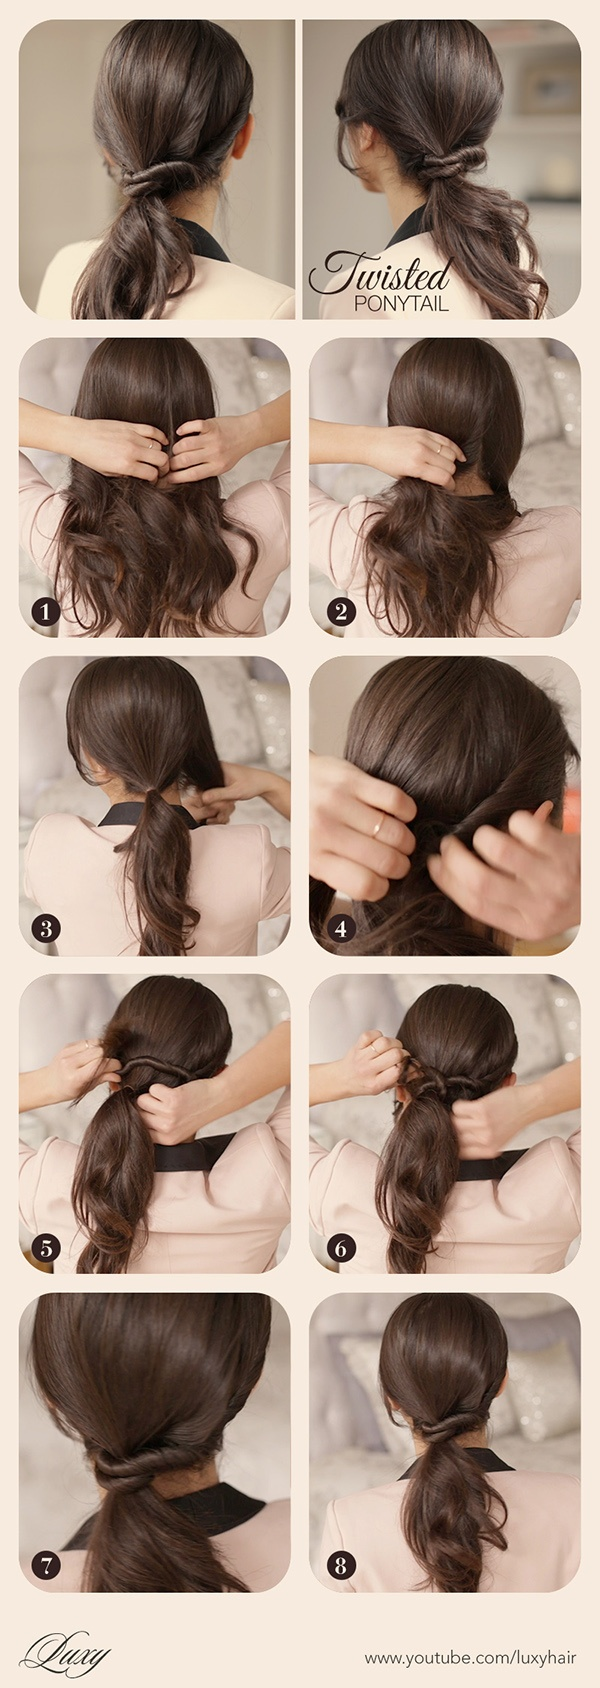 """Ponytails with simple twists """"width ="""" 458 """"class ="""" size-full wp-image-43089"""